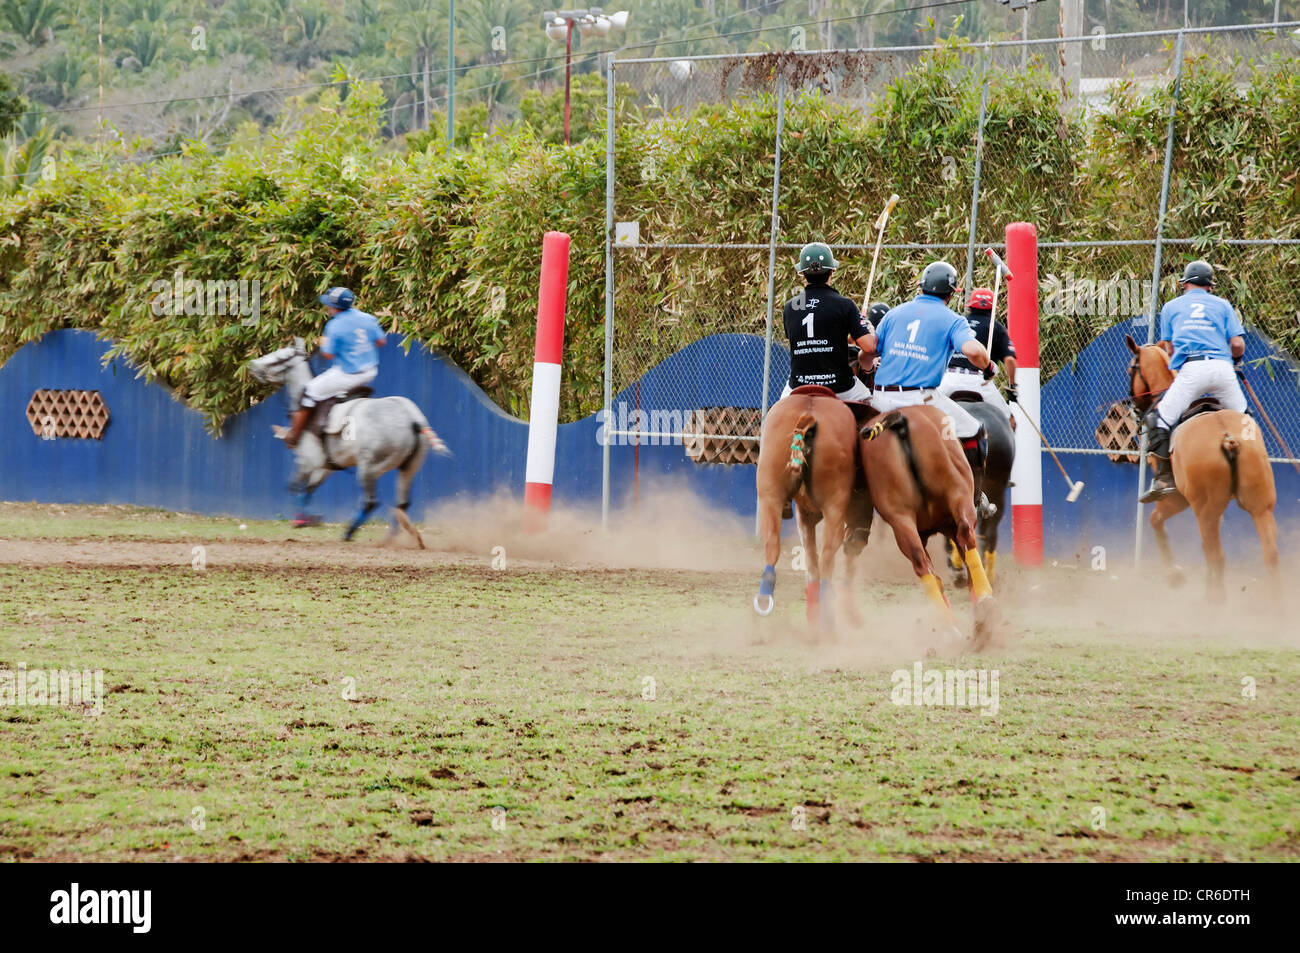 Riders on their polo ponies approach the goal posts during a fast paced match at La Patrona Polo Club in Nayarit, - Stock Image